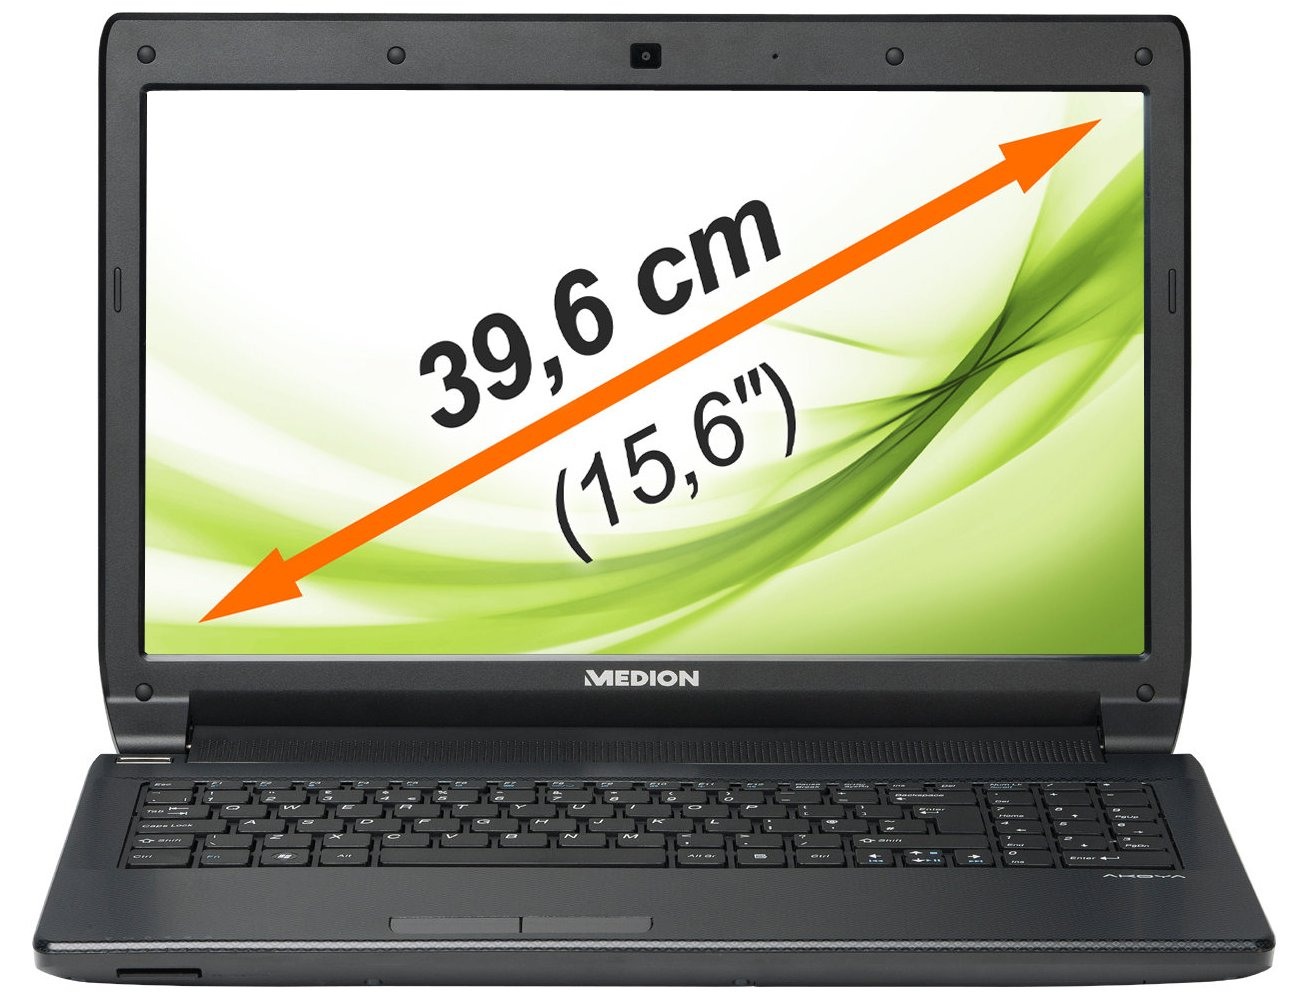 "98980 1 MEDION Notebook 15,6"" (i3, 8GB RAM, Intel HD, 500GB, USB 3.0) für 389€"